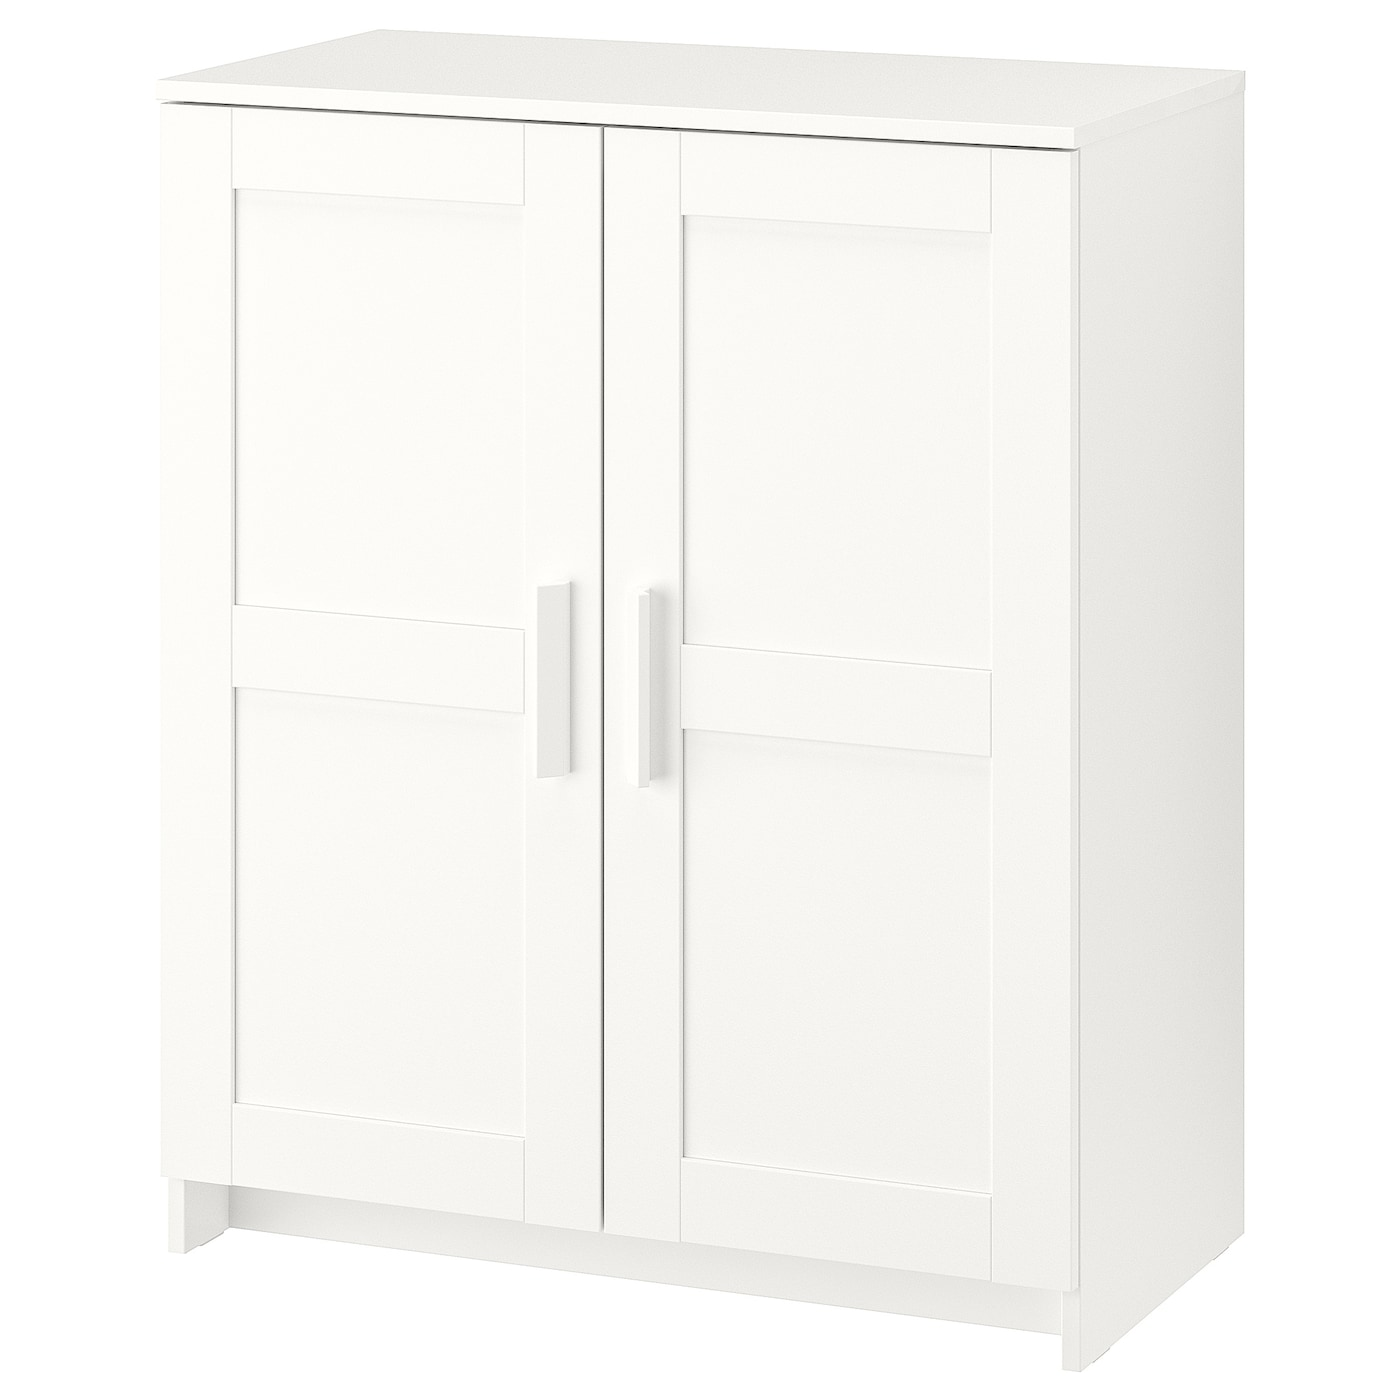 Ikea Brimnes Cabinet With Doors Adjule Shelves So You Can Customise Your Storage As Needed